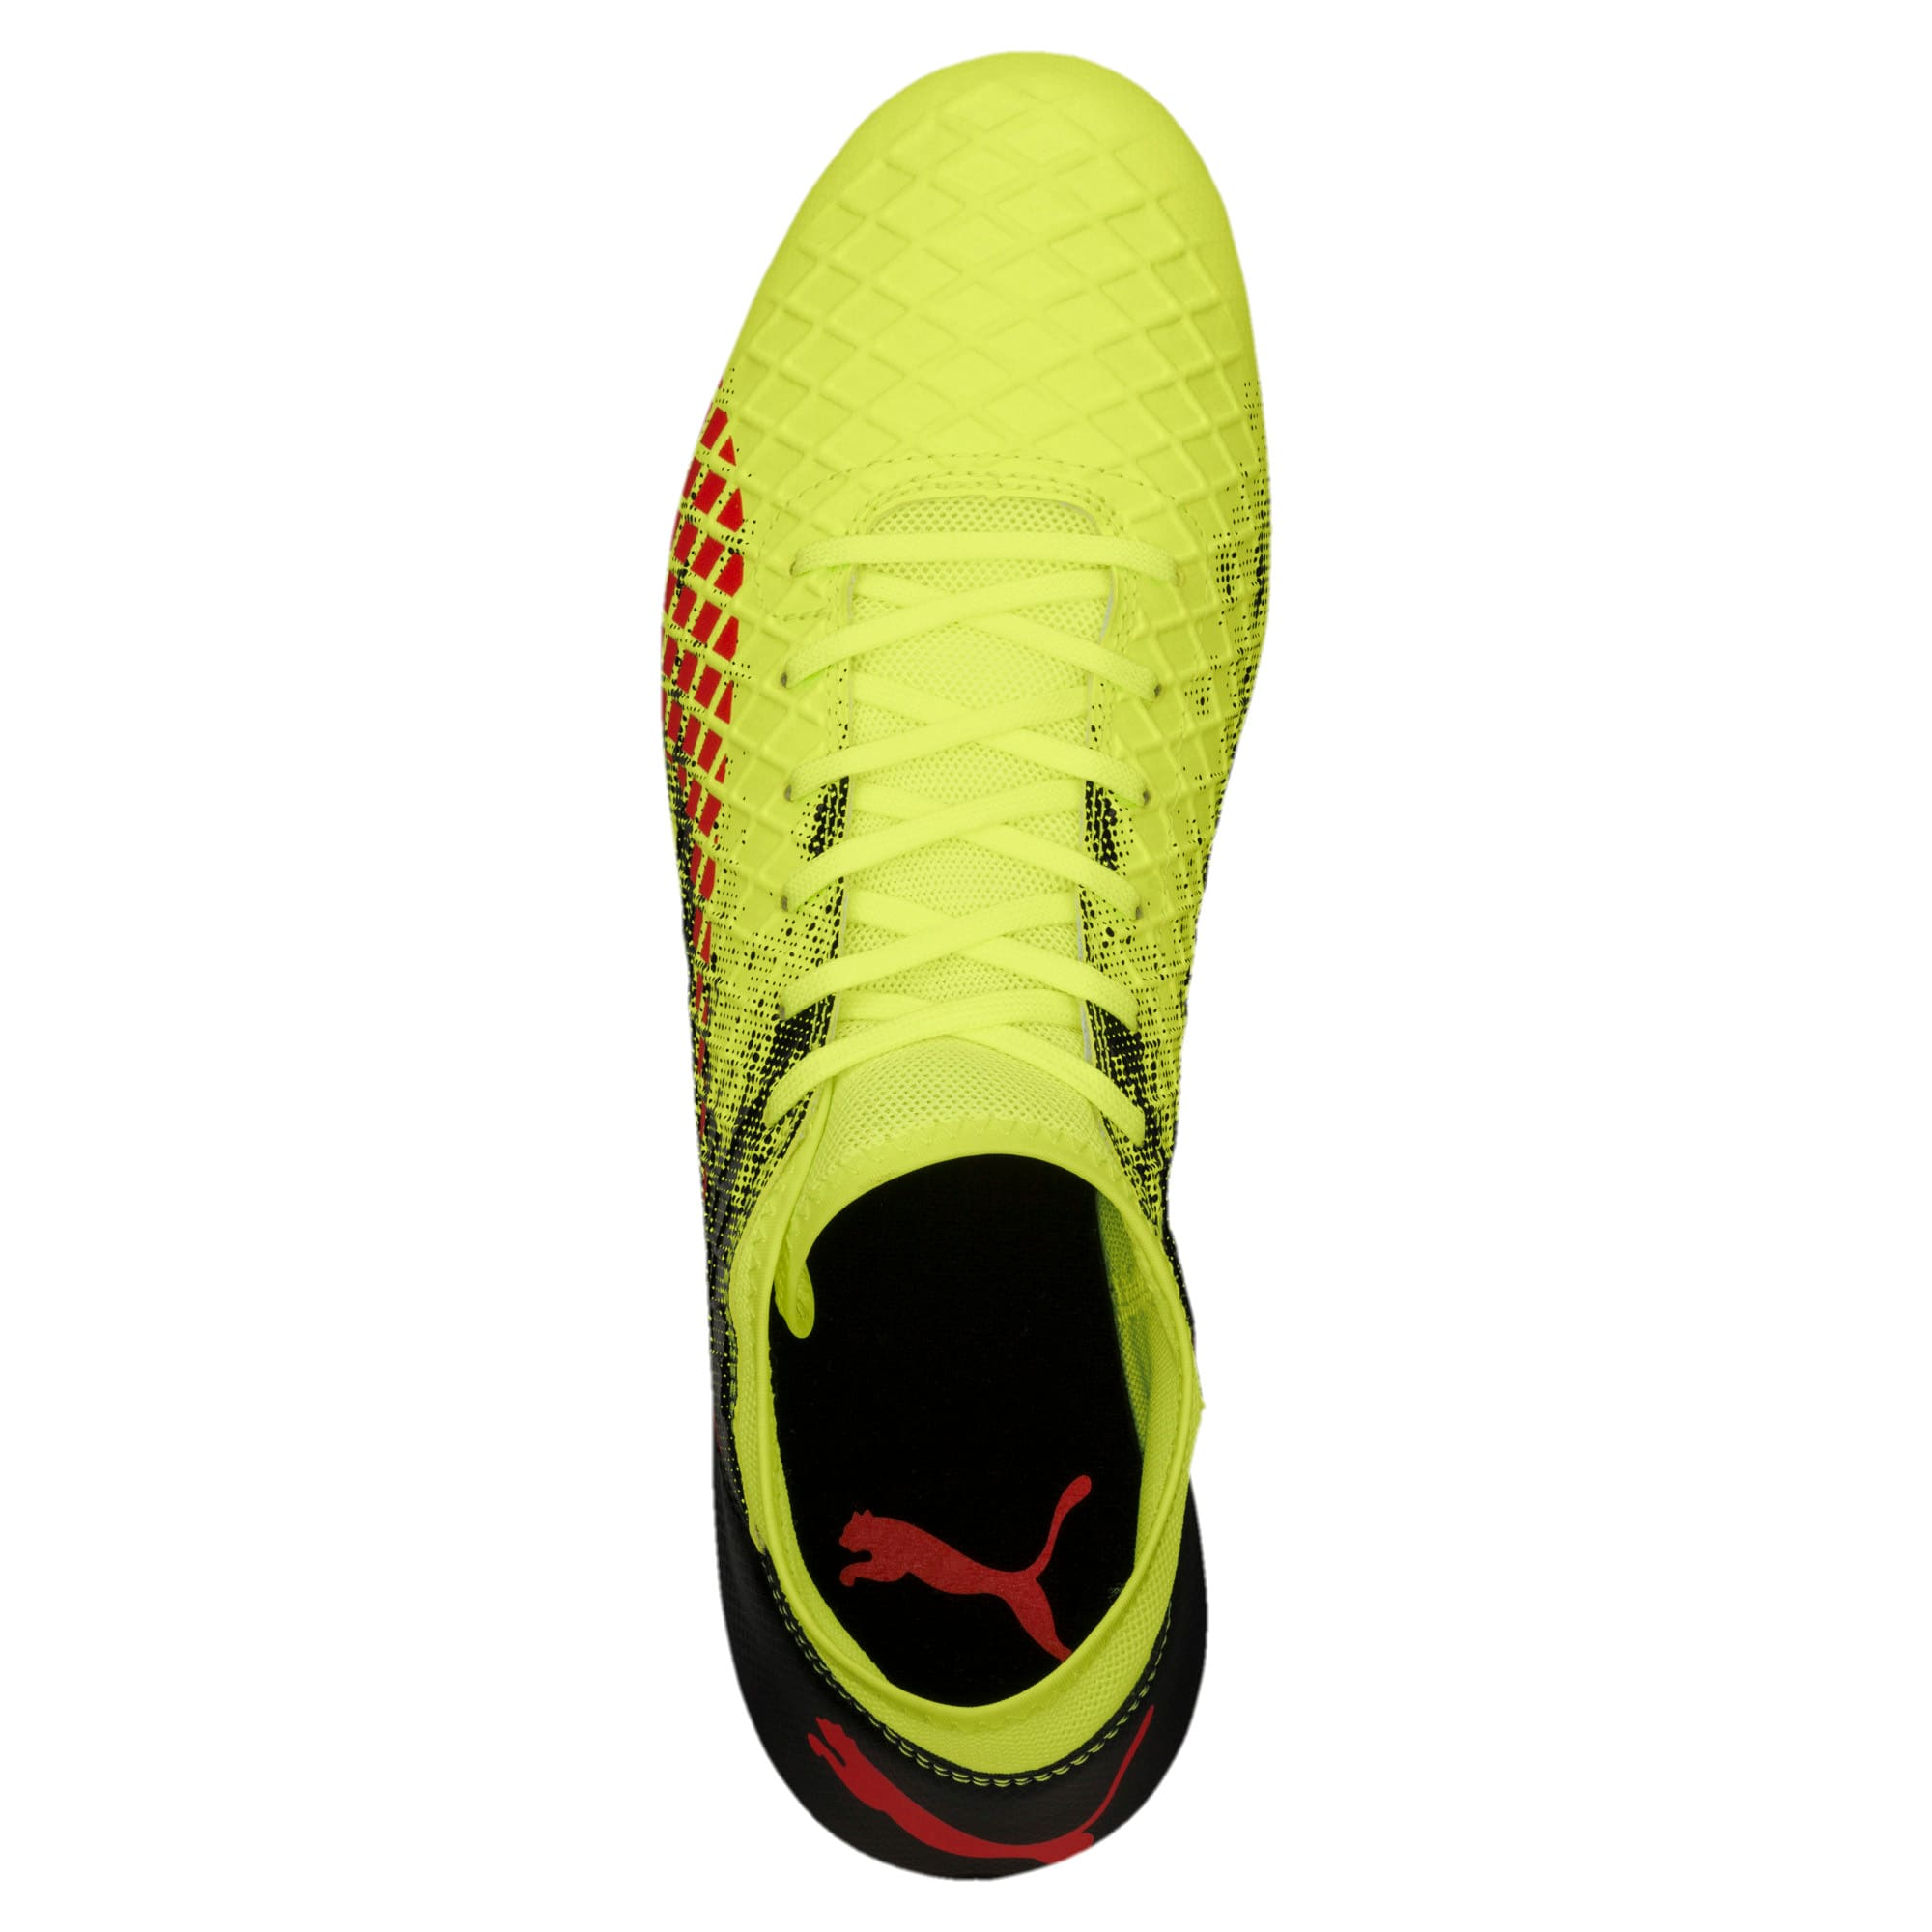 Thumbnail 5 of FUTURE 18.4 FG/AG Men's Football Boots, Yellow-Red-Black, medium-IND